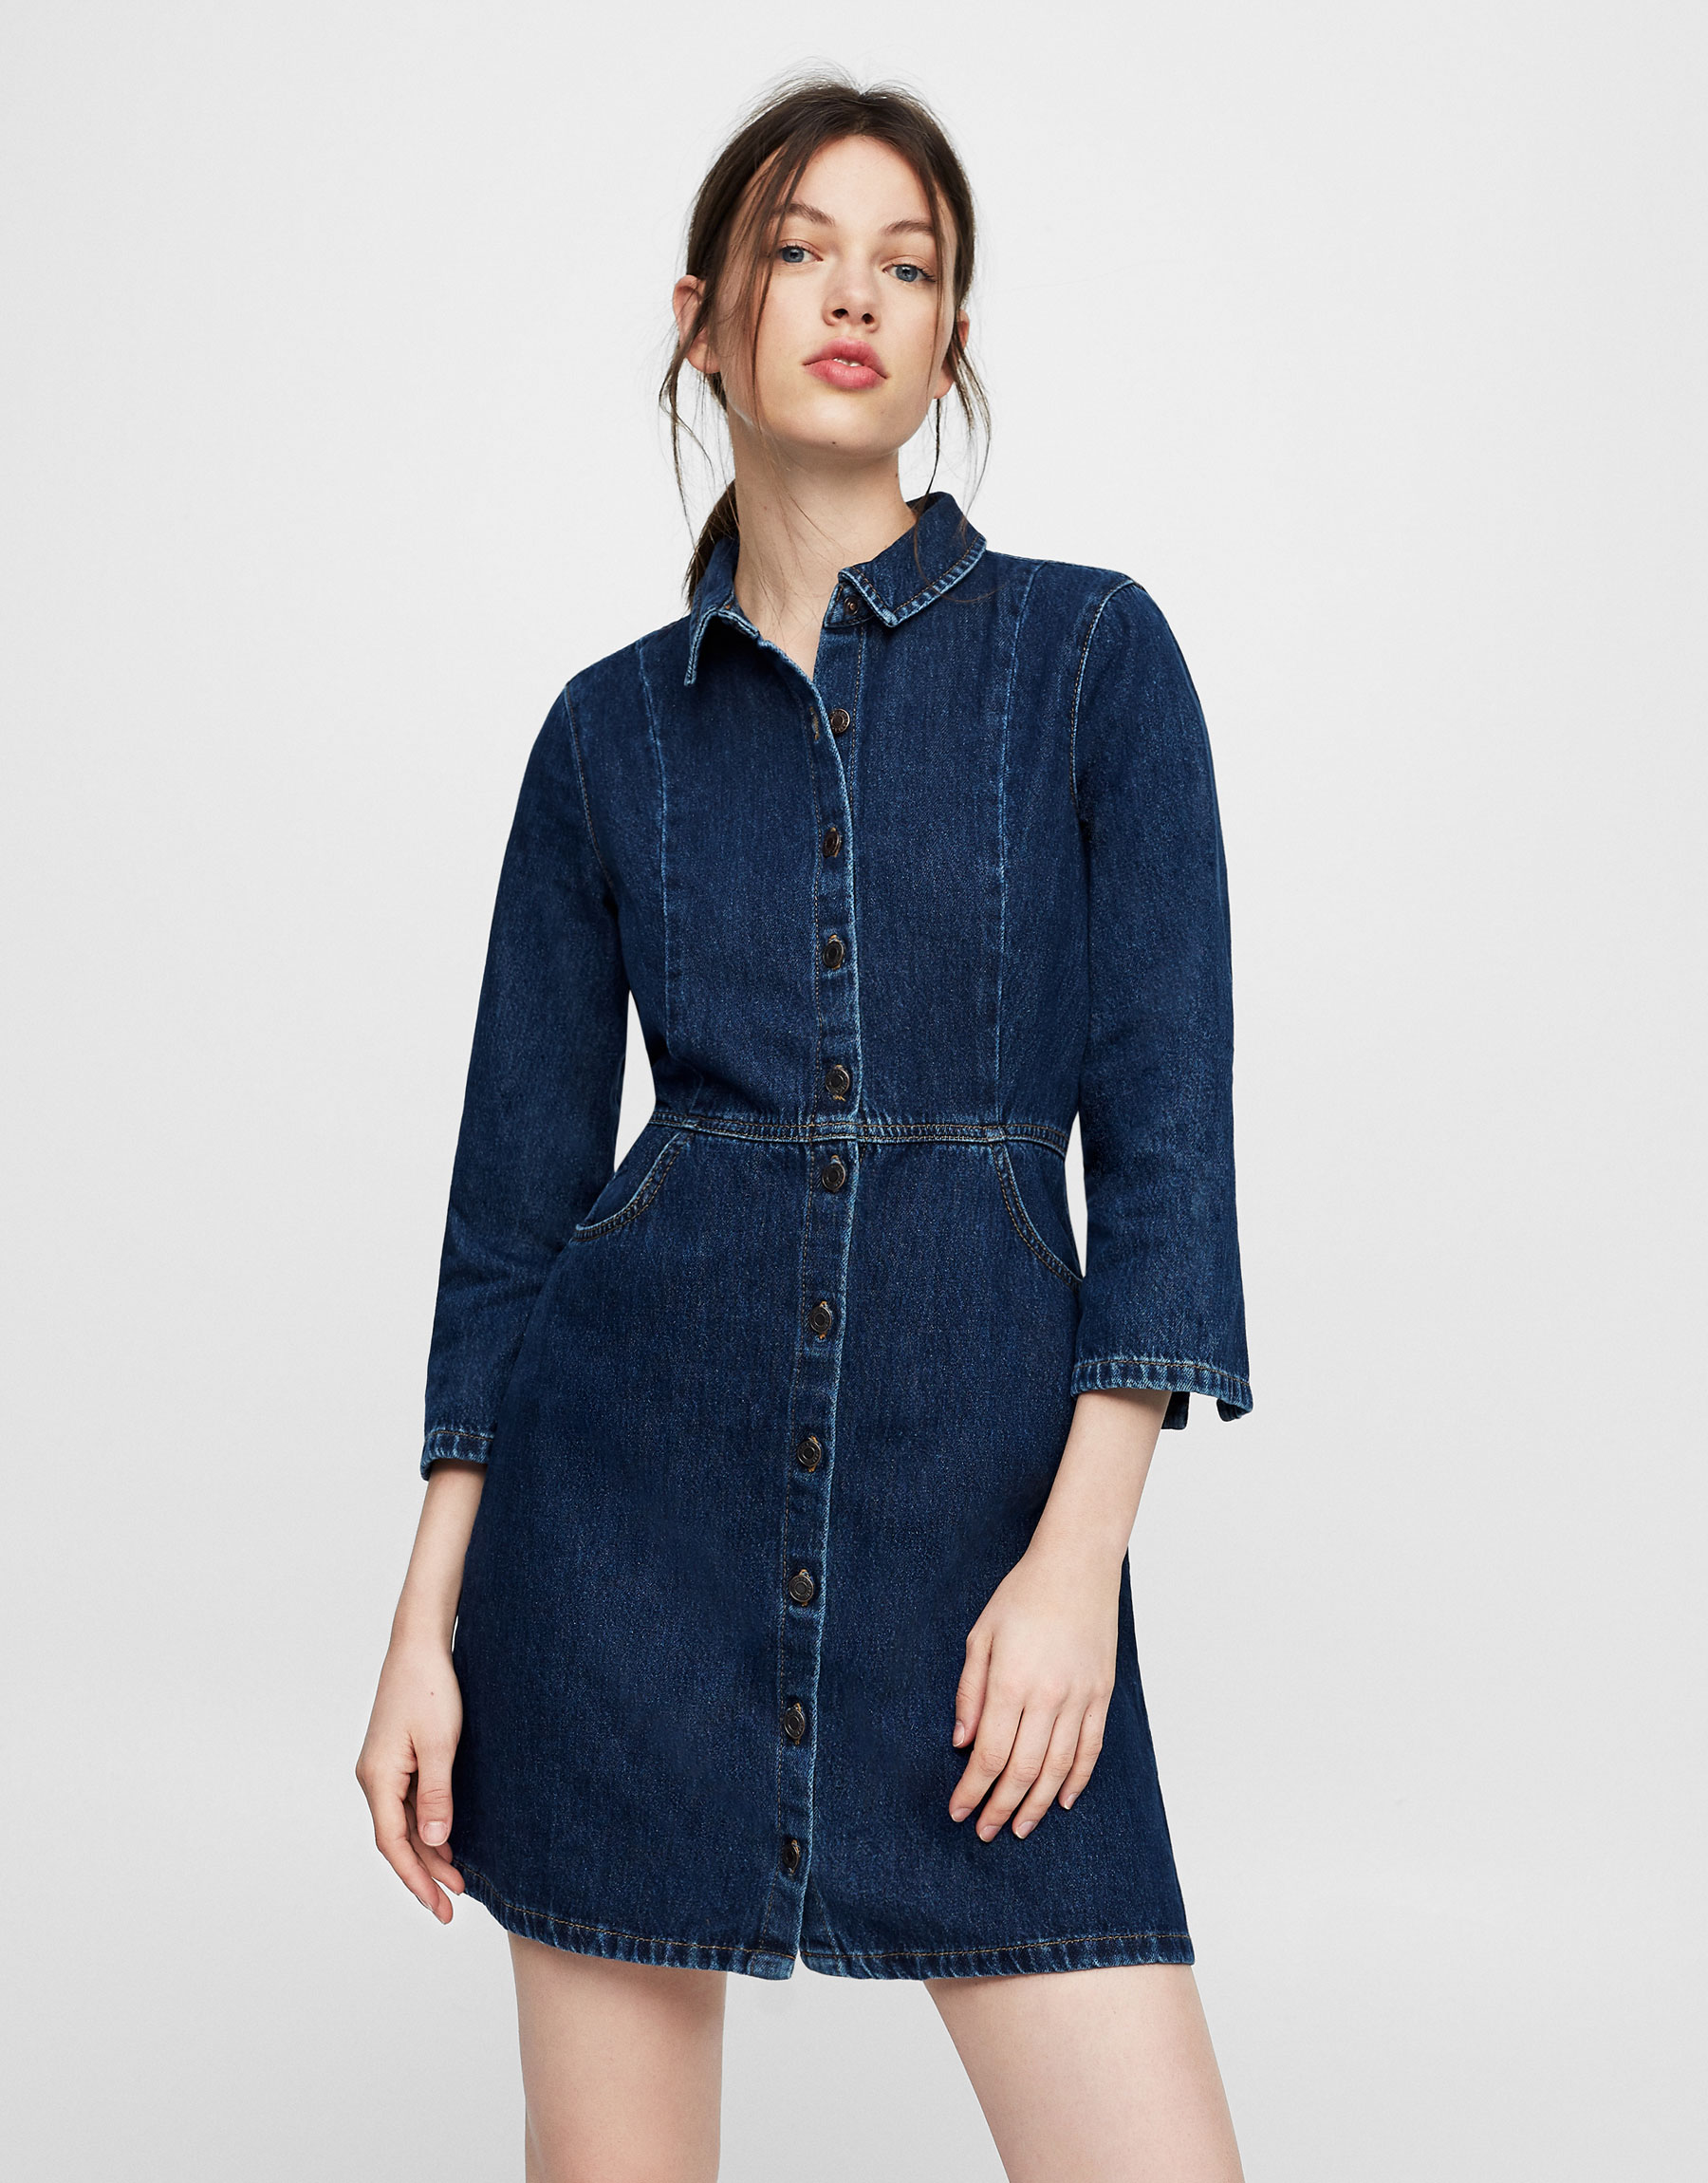 Denim dress with button fastening